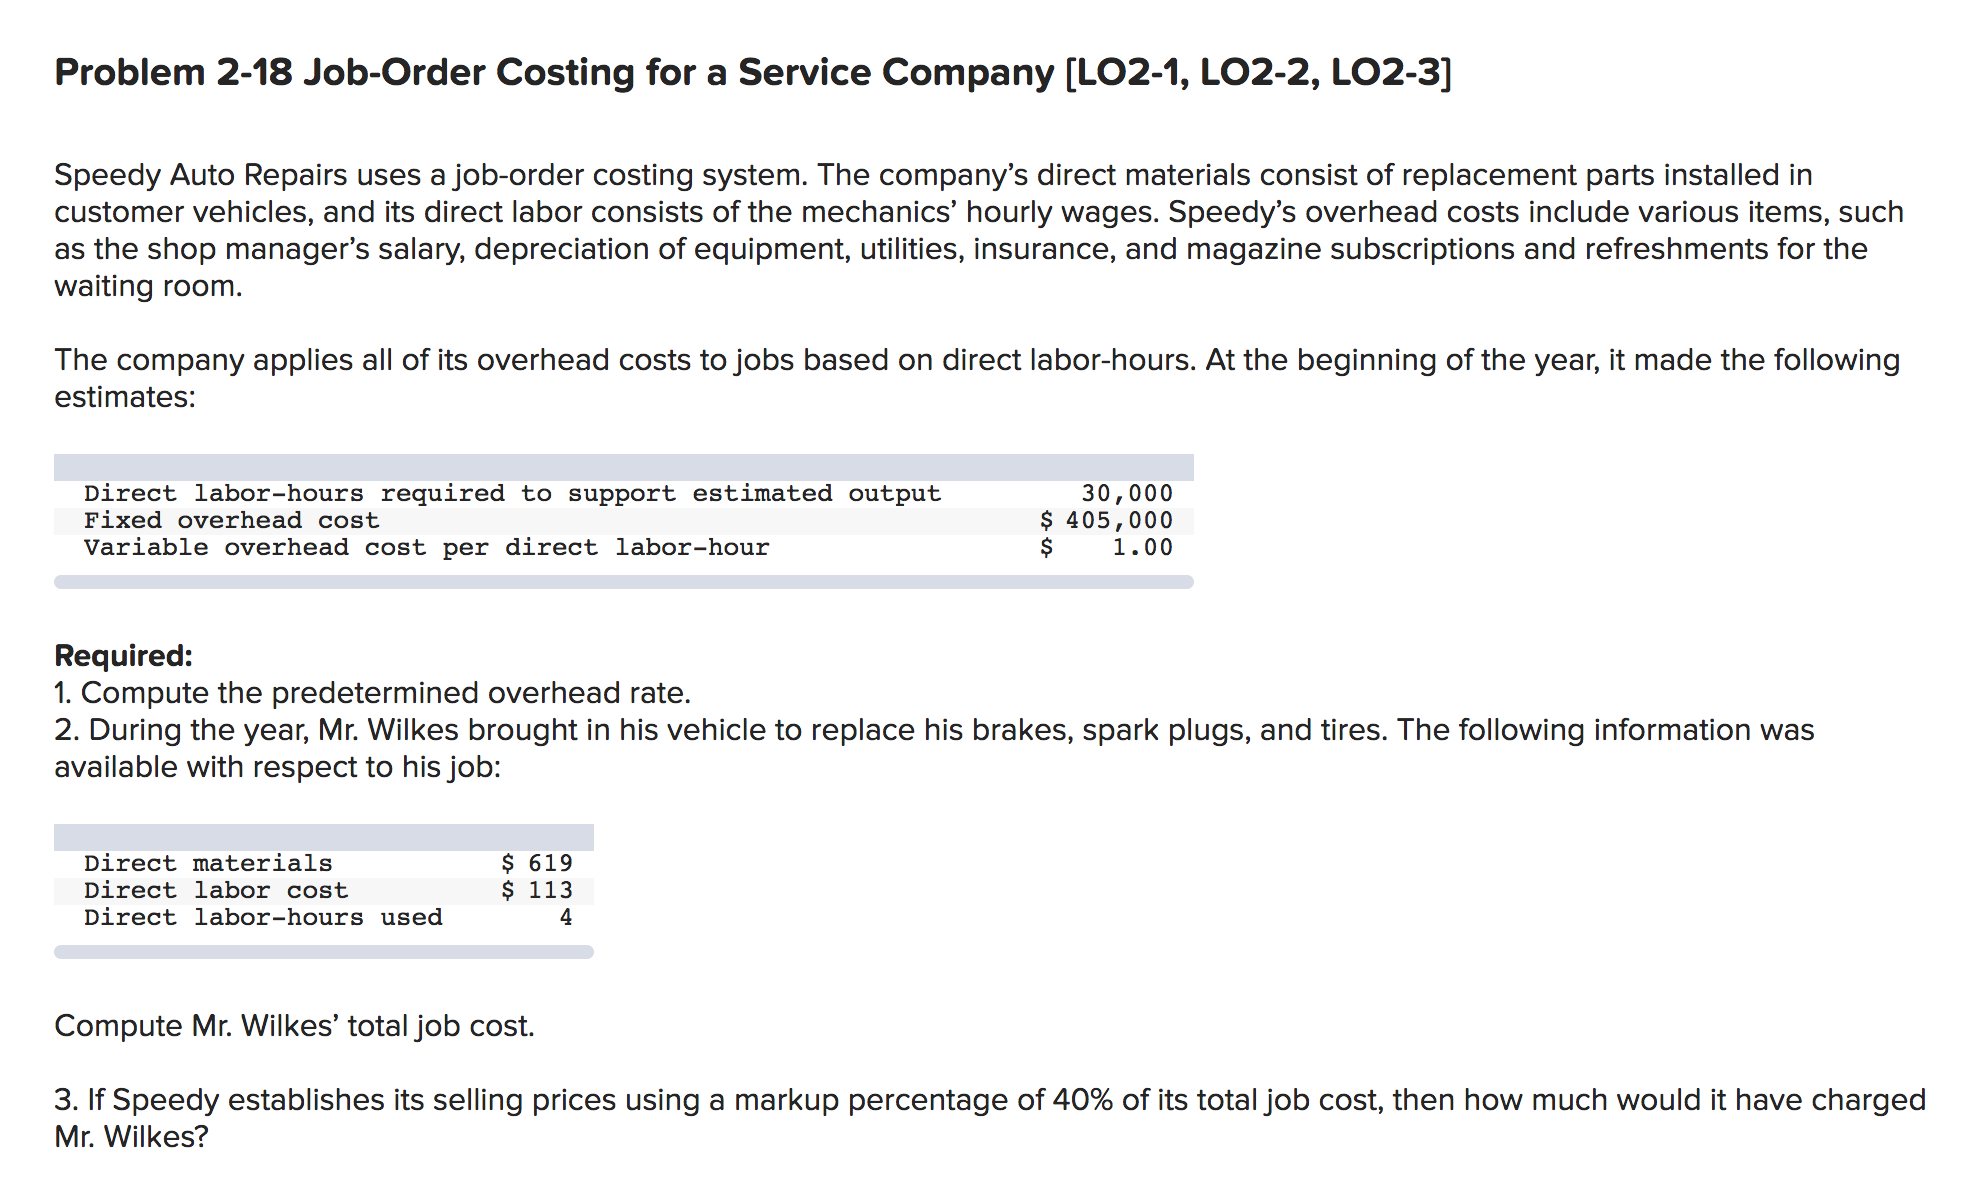 Problem 2-18 Job-Order Costing for a Service Company [LO2-1, LO2-2, LO2-3] Speedy Auto Repairs uses a job-order costing system. The company's direct materials consist of replacement parts installed in customer vehicles, and its direct labor consists of the mechanics' hourly wages. Speedy's overhead costs include various items, such as the shop manager's salary, depreciation of equipment, utilities, insurance, and magazine subscriptions and refreshments for the waiting room. The company applies all of its overhead costs to jobs based on direct labor-hours. At the beginning of the year, it made the following estimates: 30,000 $ 405,000 1.00 Direct labor-hours required to support estimated output Fixed overhead cost Variable overhead cost per direct labor-hour Required: 1. Compute the predetermined overhead rate. 2. During the year, Mr. Wilkes brought in his vehicle to replace his brakes, spark plugs, and tires. The following information was available with respect to his job: $ 619 $ 113 Direct materials Direct labor cost Direct labor-hours used 4 Compute Mr. Wilkes' total job cost. 3. If Speedy establishes its selling prices using a markup percentage of 40% of its total job cost, then how much would it have charged Mr. Wilkes?